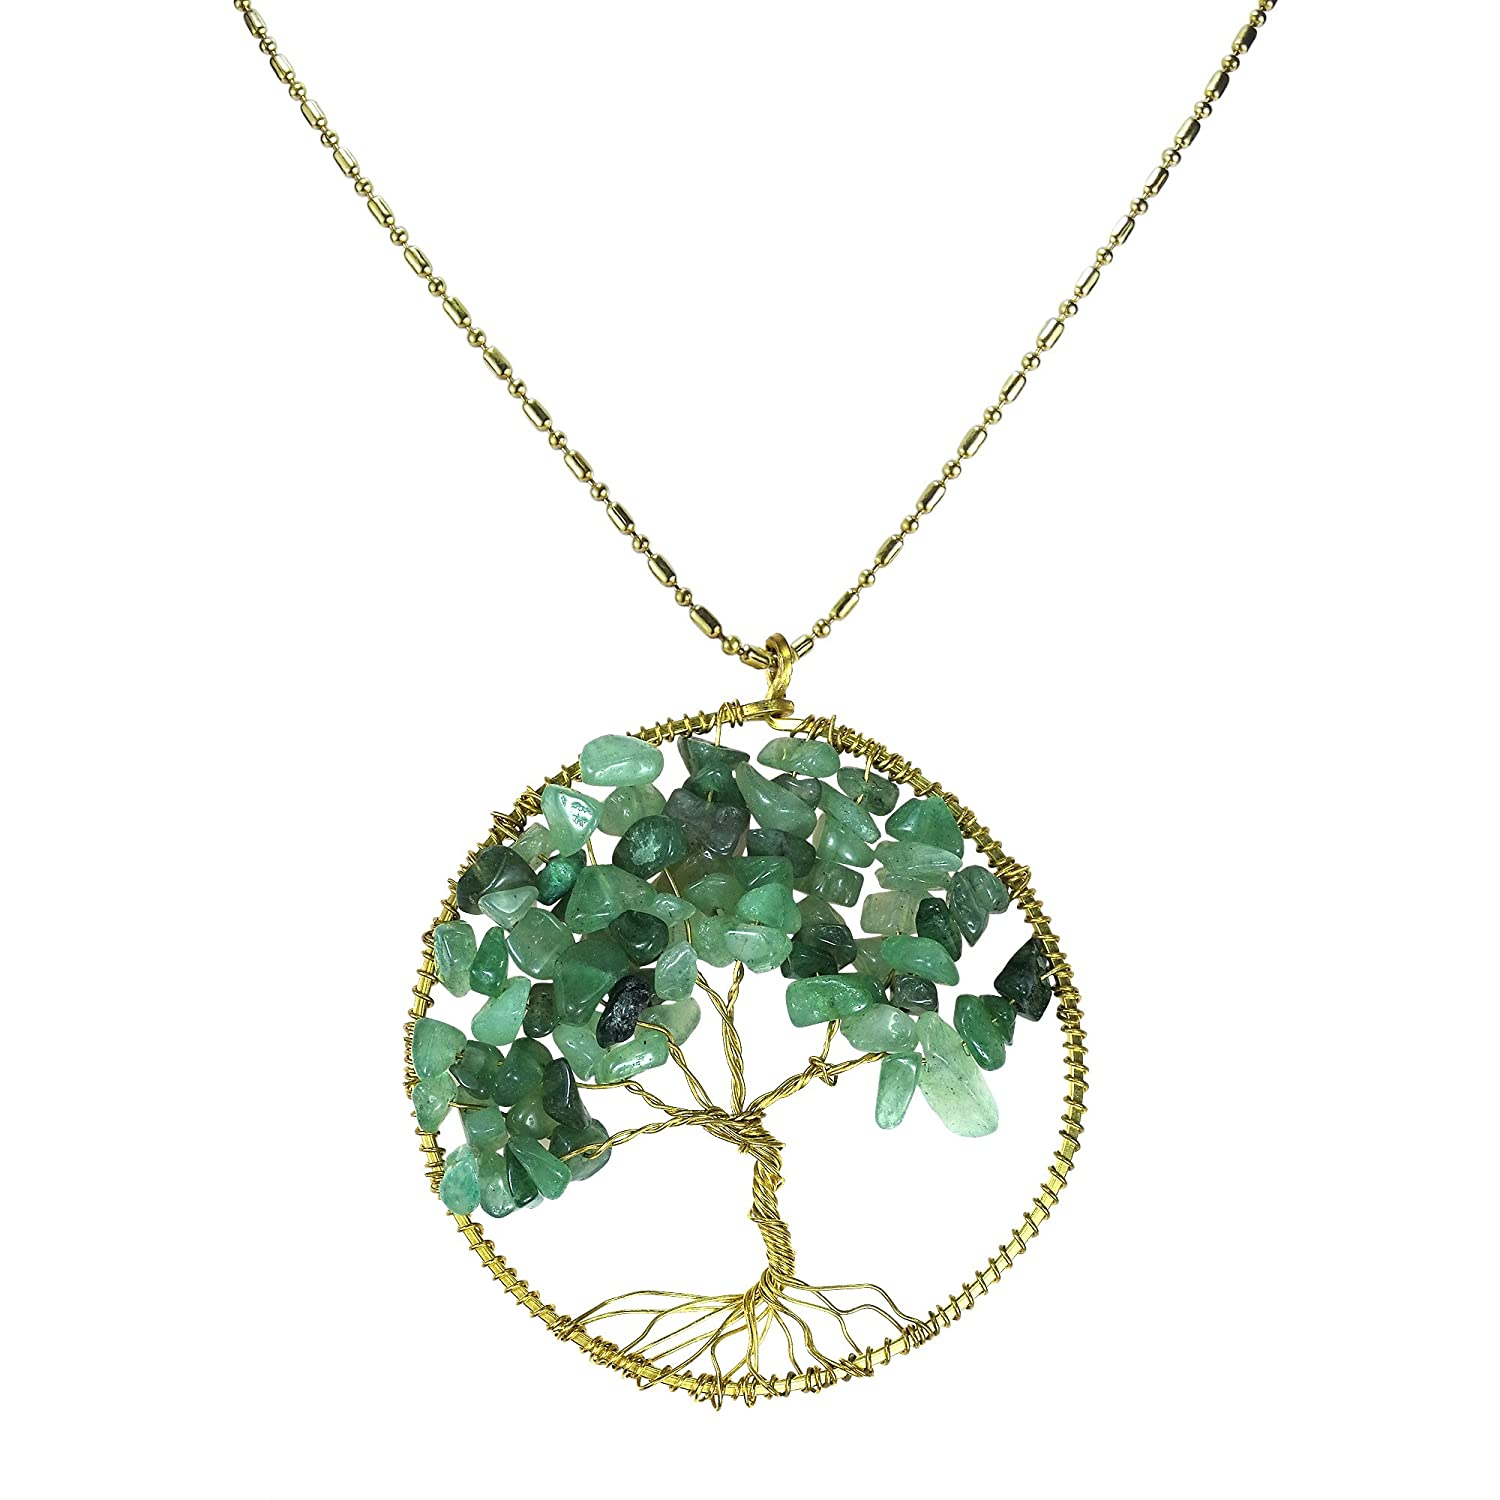 brass on great sacred long pin the overstock stone tree is familiar life shopping eternal of thailand necklaces natural geometric deals most one necklace